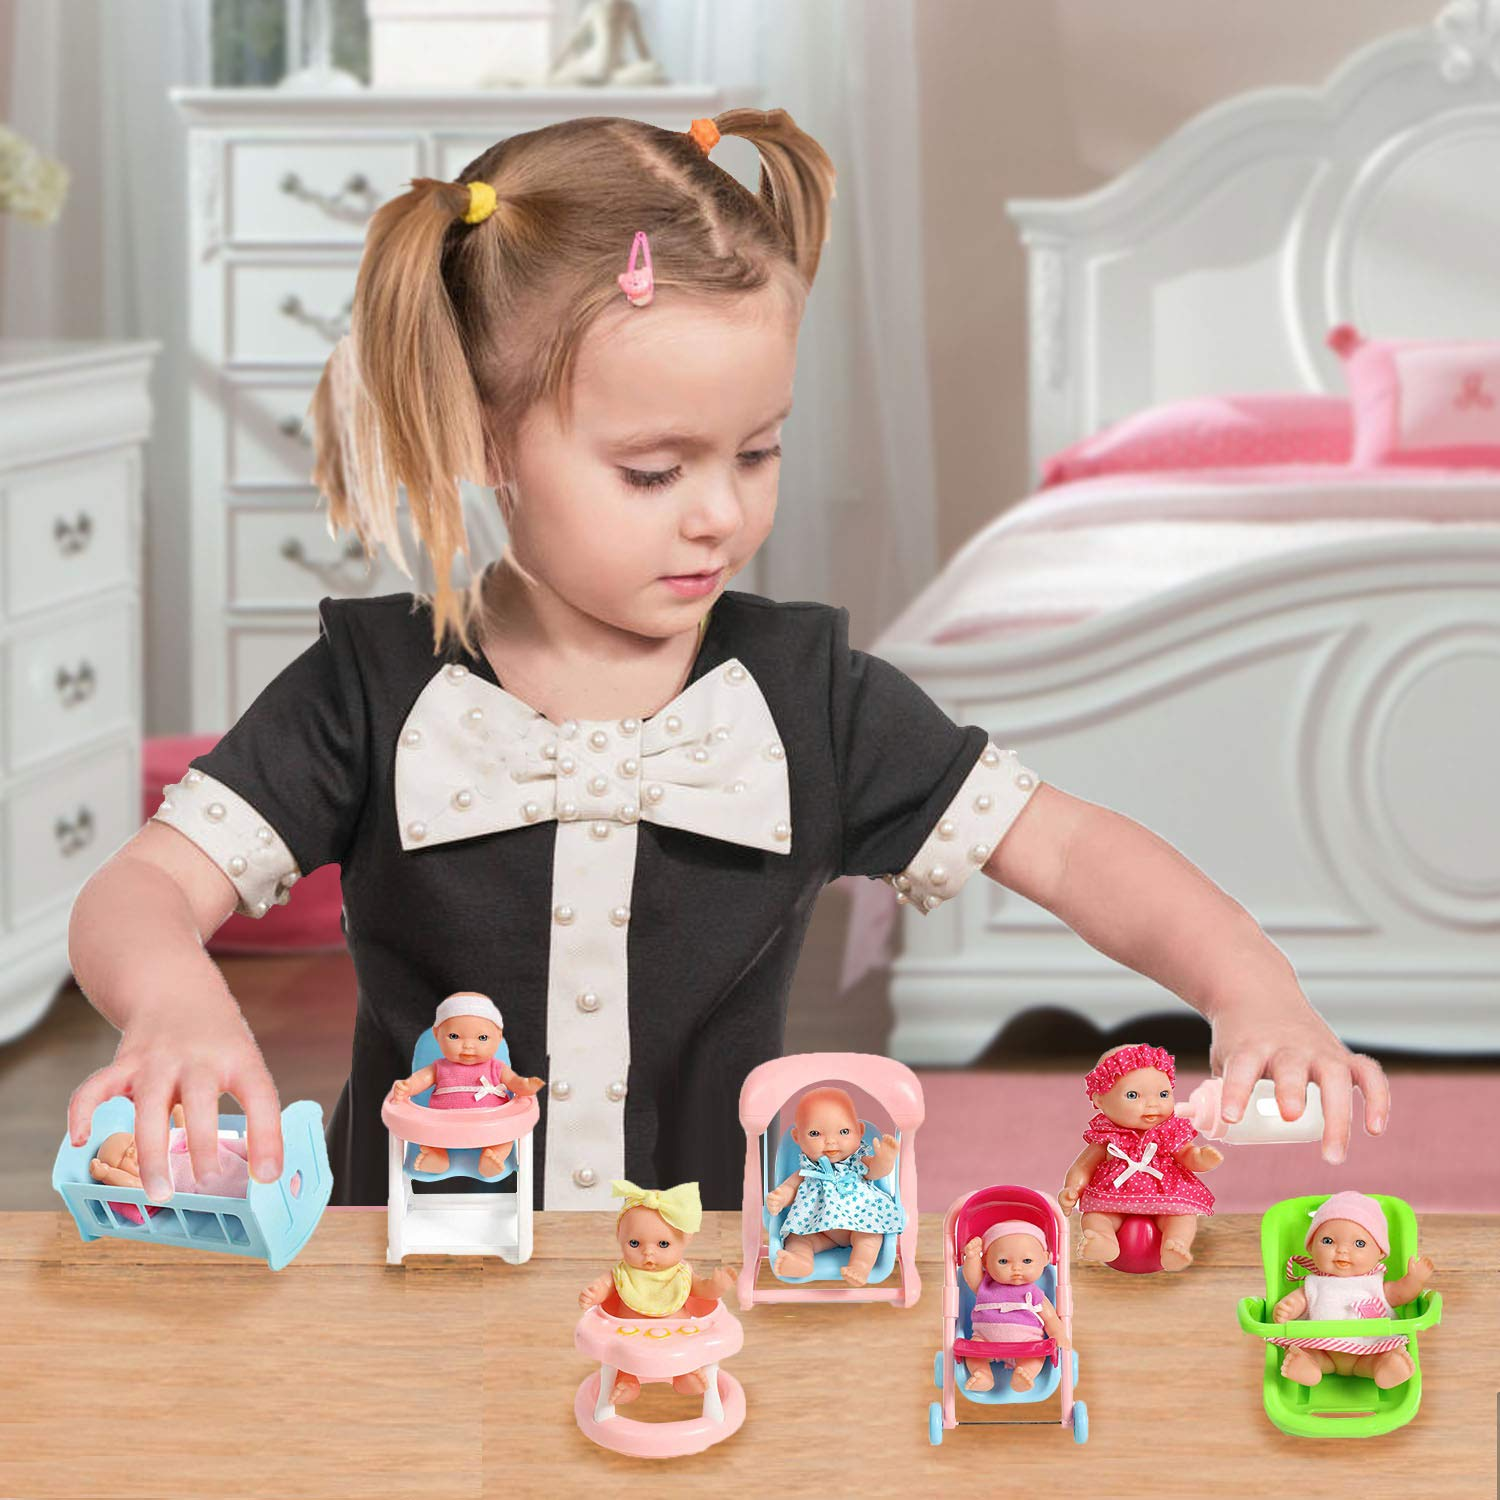 Mommy /& Me Doll Collection Swing Bath Stroller Crib Potty High Chair Car Seat Set Of 8 Assorted 5 Mini Dolls